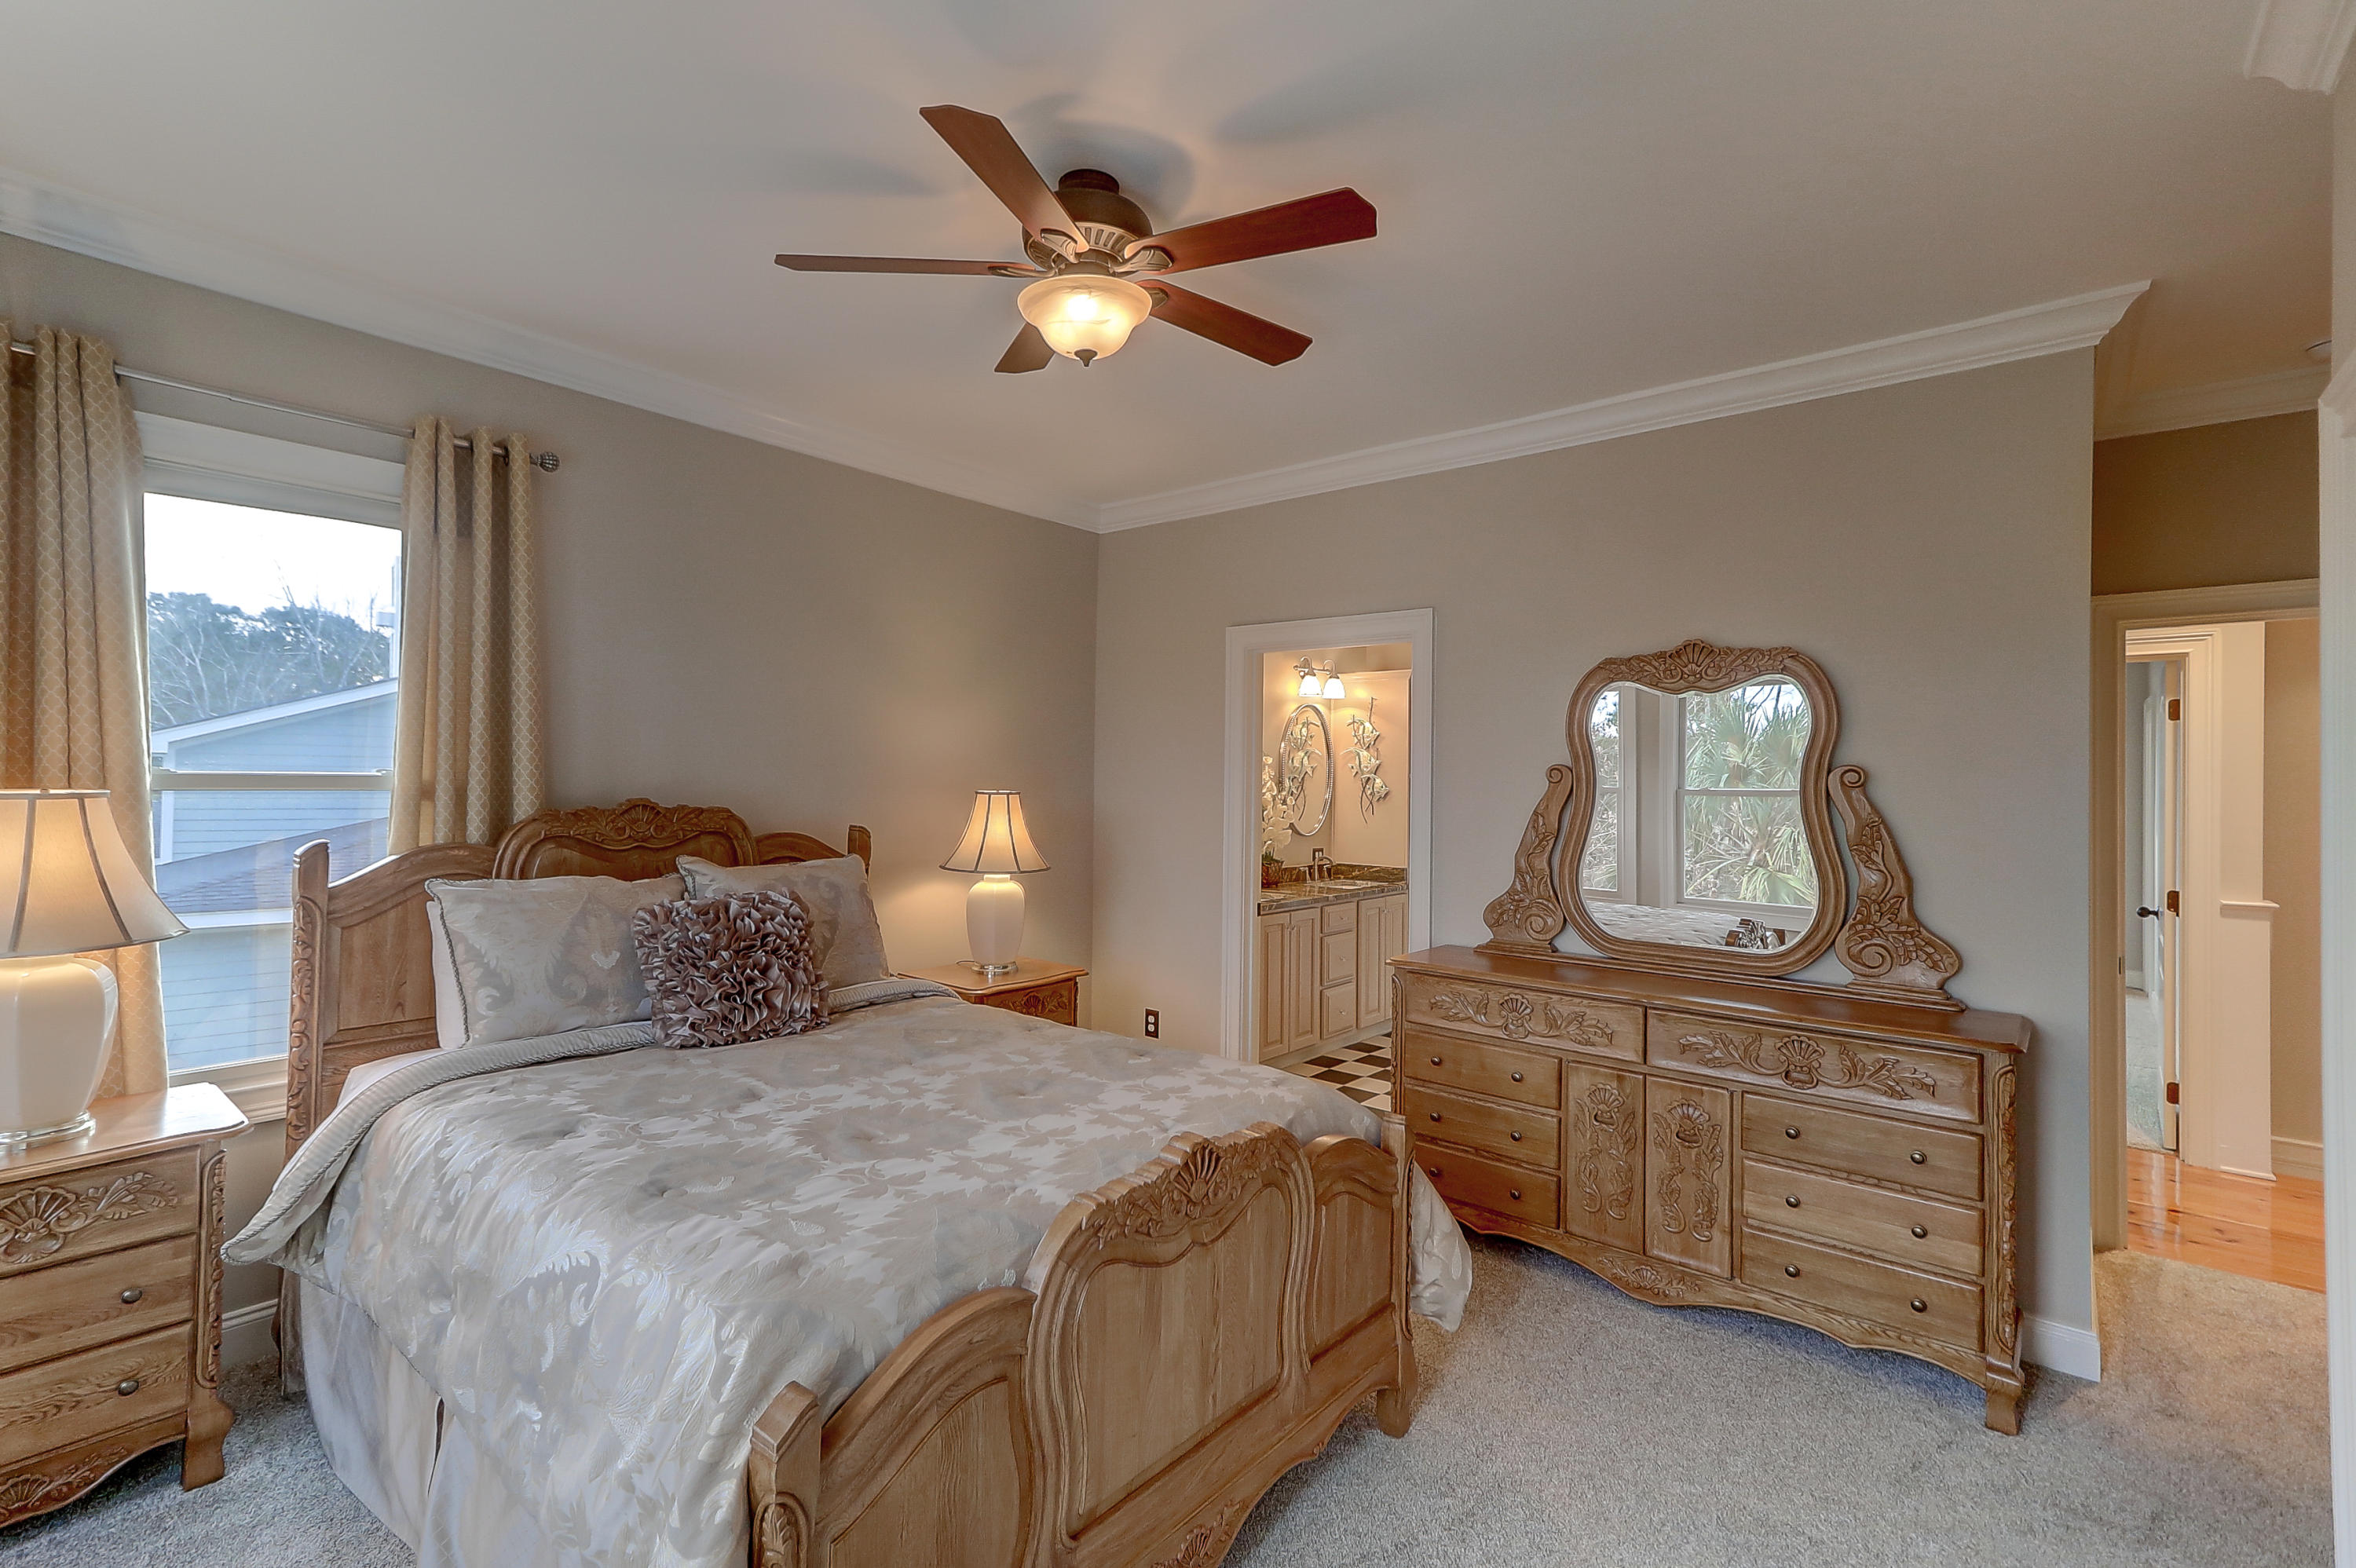 Dunes West Homes For Sale - 1764 Greenspoint, Mount Pleasant, SC - 40